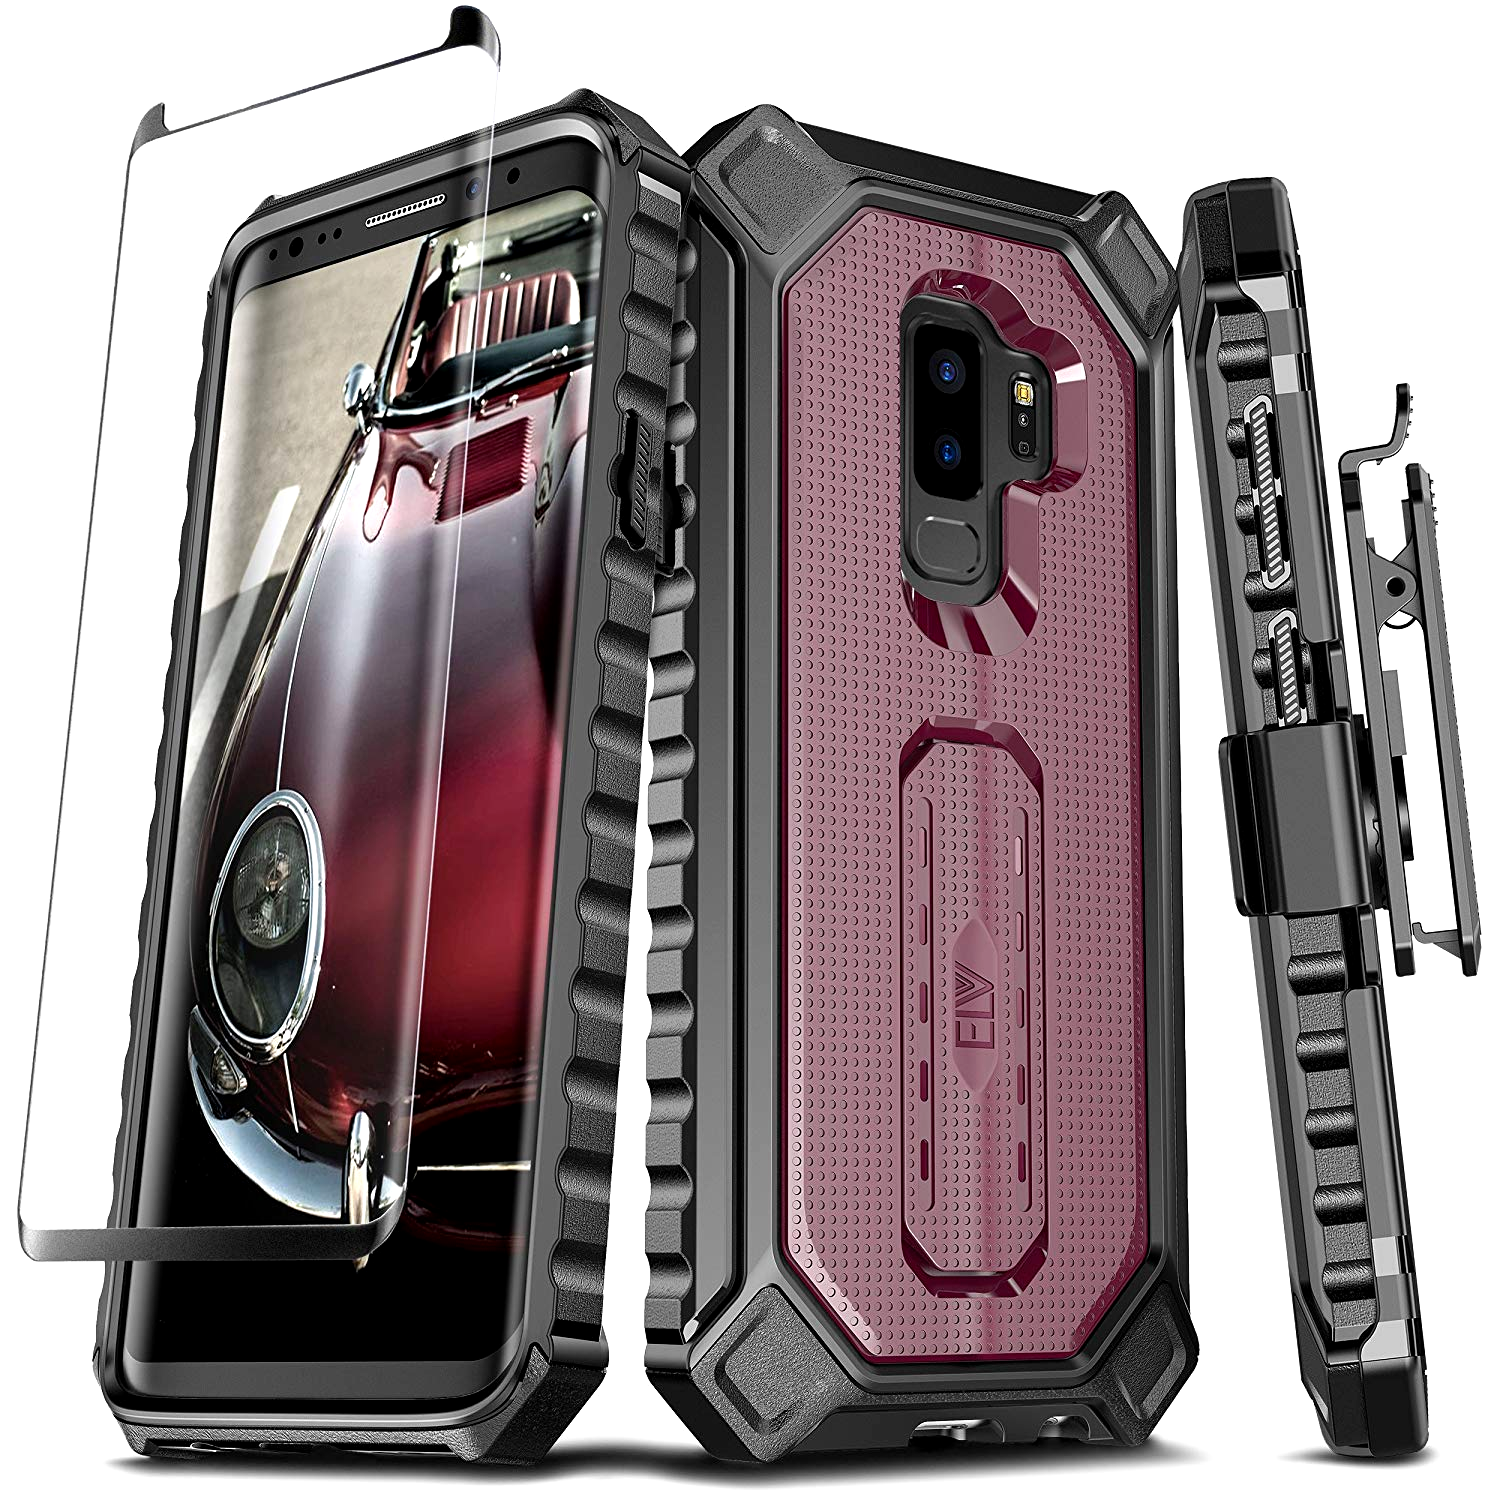 4d78b1120f GALAXY S9 PLUS Case Rugged Cover W/ Built-in kickstand+Screen Protector  BURGUNDY Built-in kickstand: you can now enjoy your phone hands free.